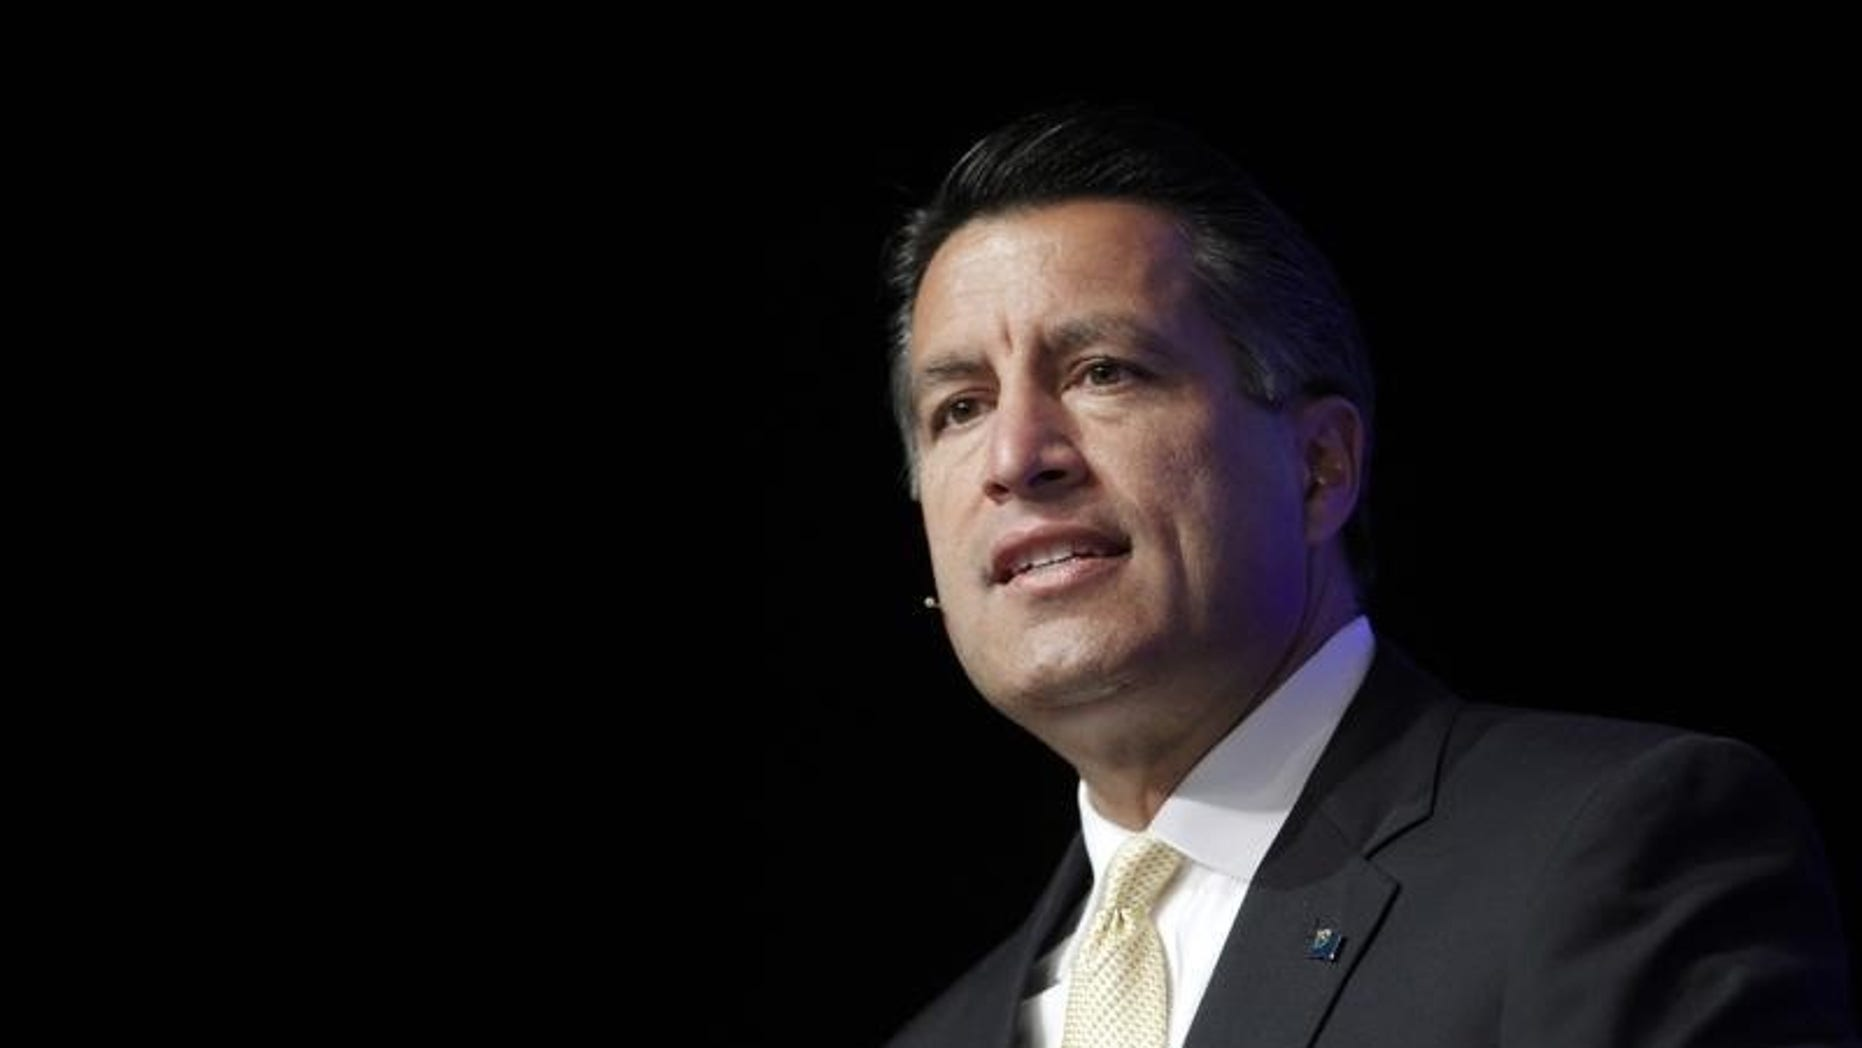 Nevada Governor Brian Sandoval gives a welcoming address at the Skybridge Alternatives (SALT) Conference in Las Vegas, Nevada May 9, 2012. REUTERS/STEVE MARCUS